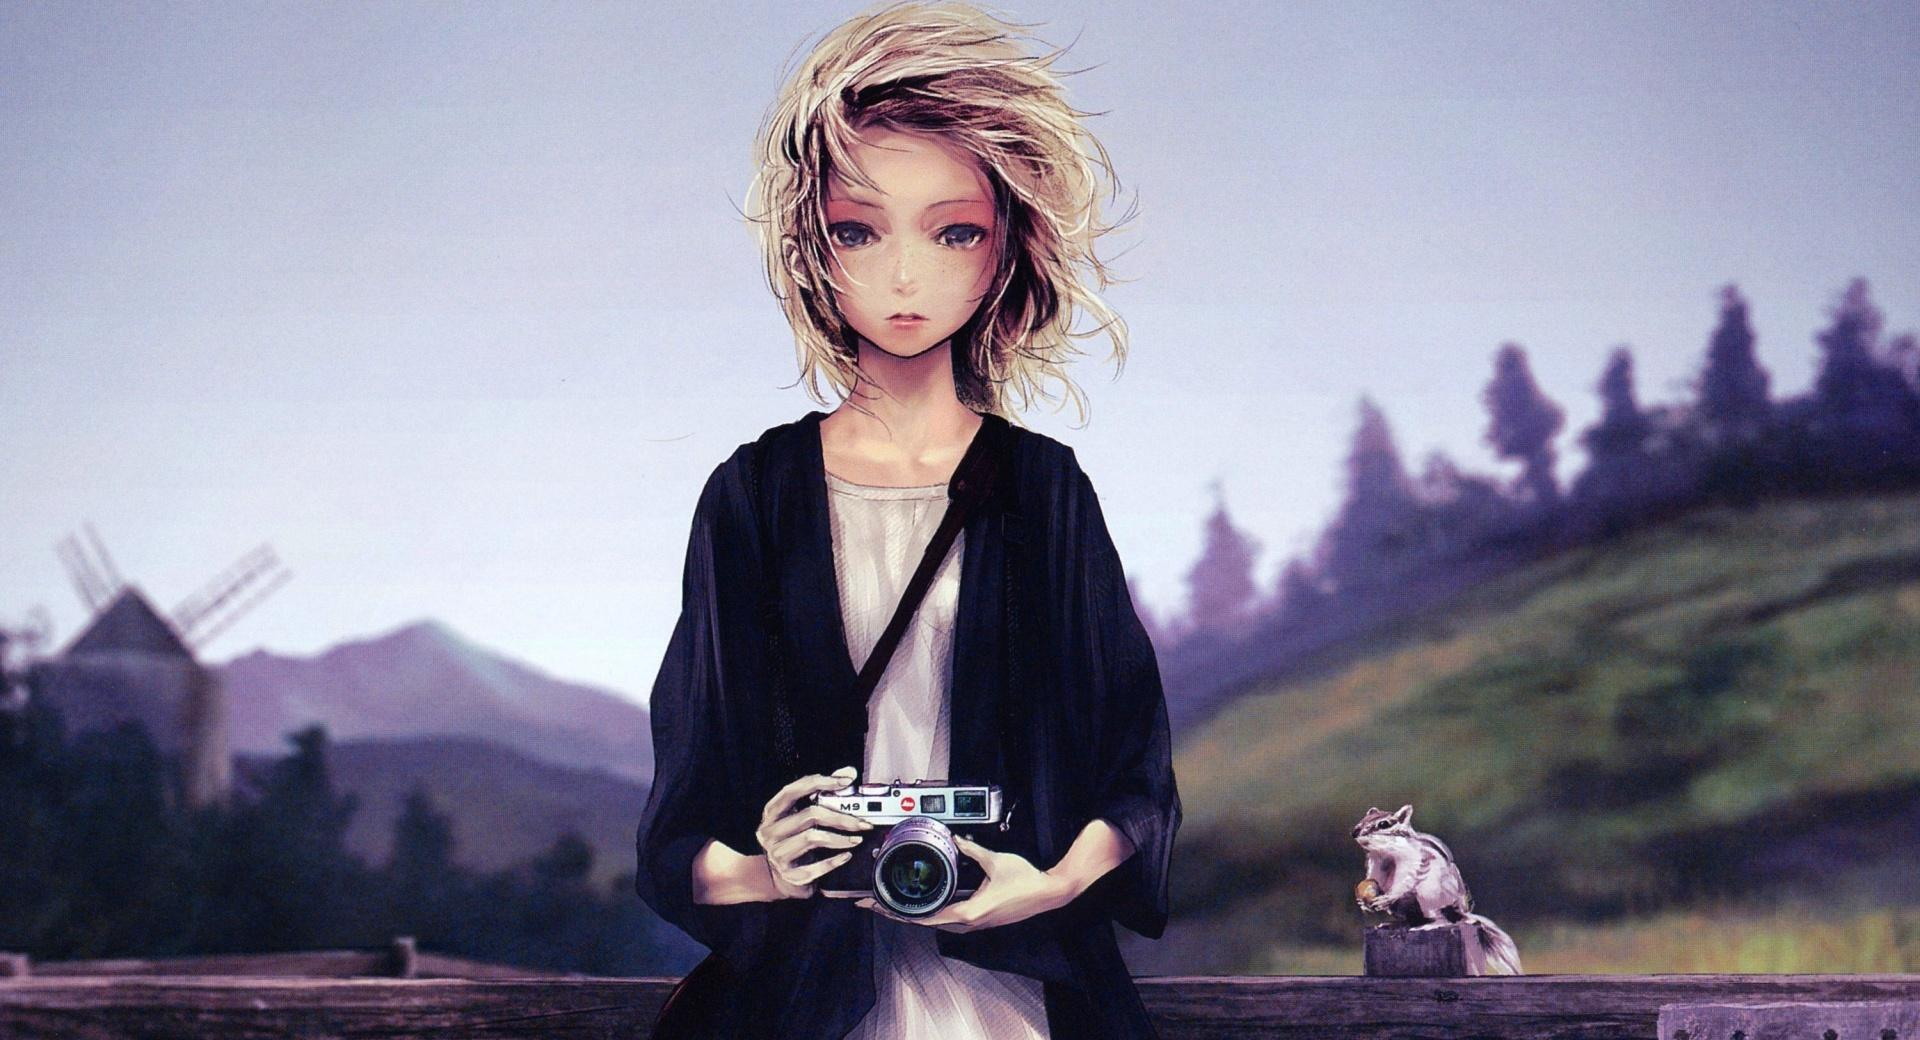 Girl With Camera wallpapers HD quality